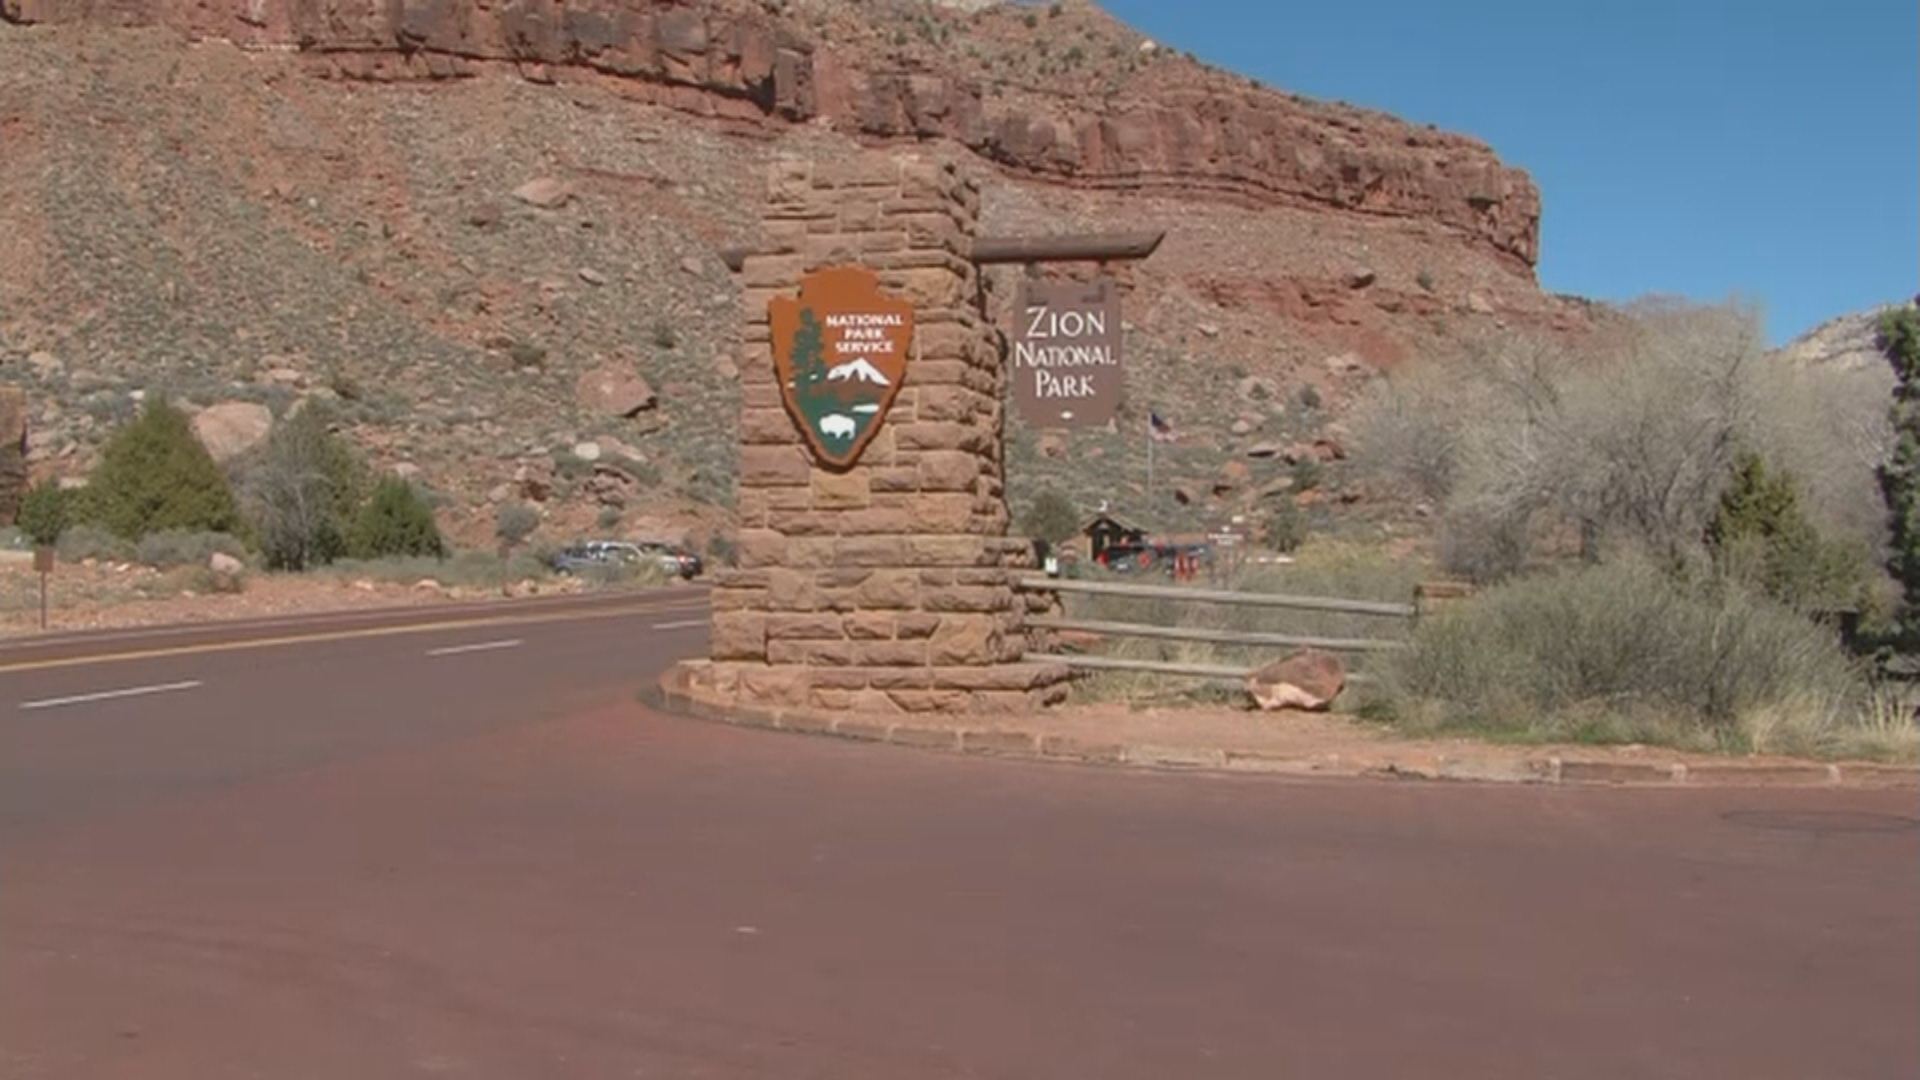 More than 30,000 people crowded into Zion National Park Sunday over Memorial Day weekend as park managers at the iconic red rock landscape work to manage the throngs of visitors. (Photo: KUTV)